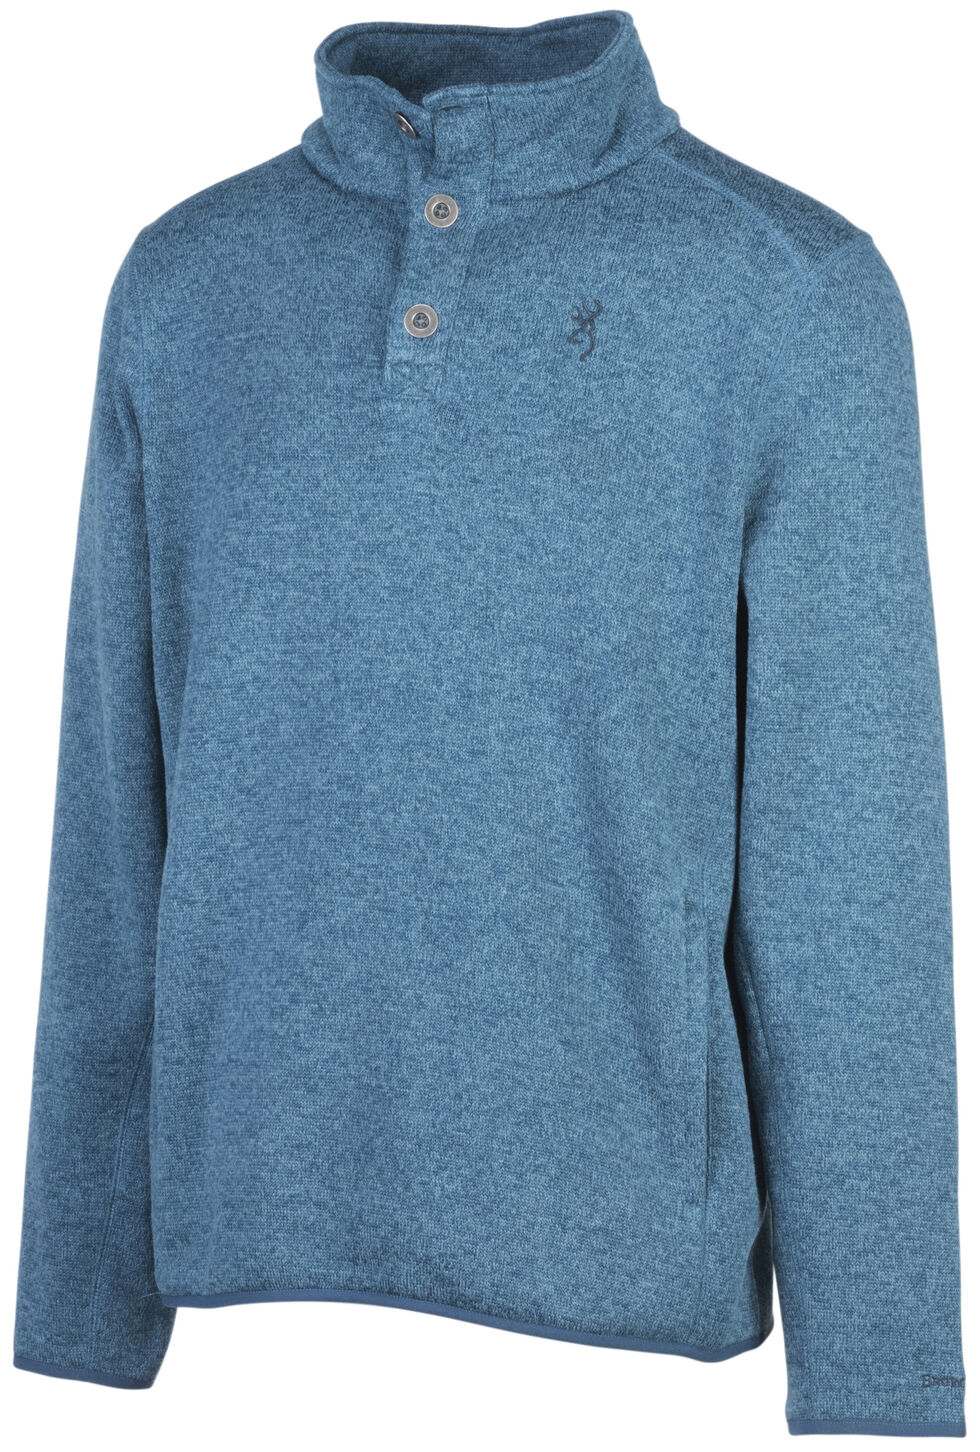 Browning Men's Blue Gilson Sweater, Blue, hi-res